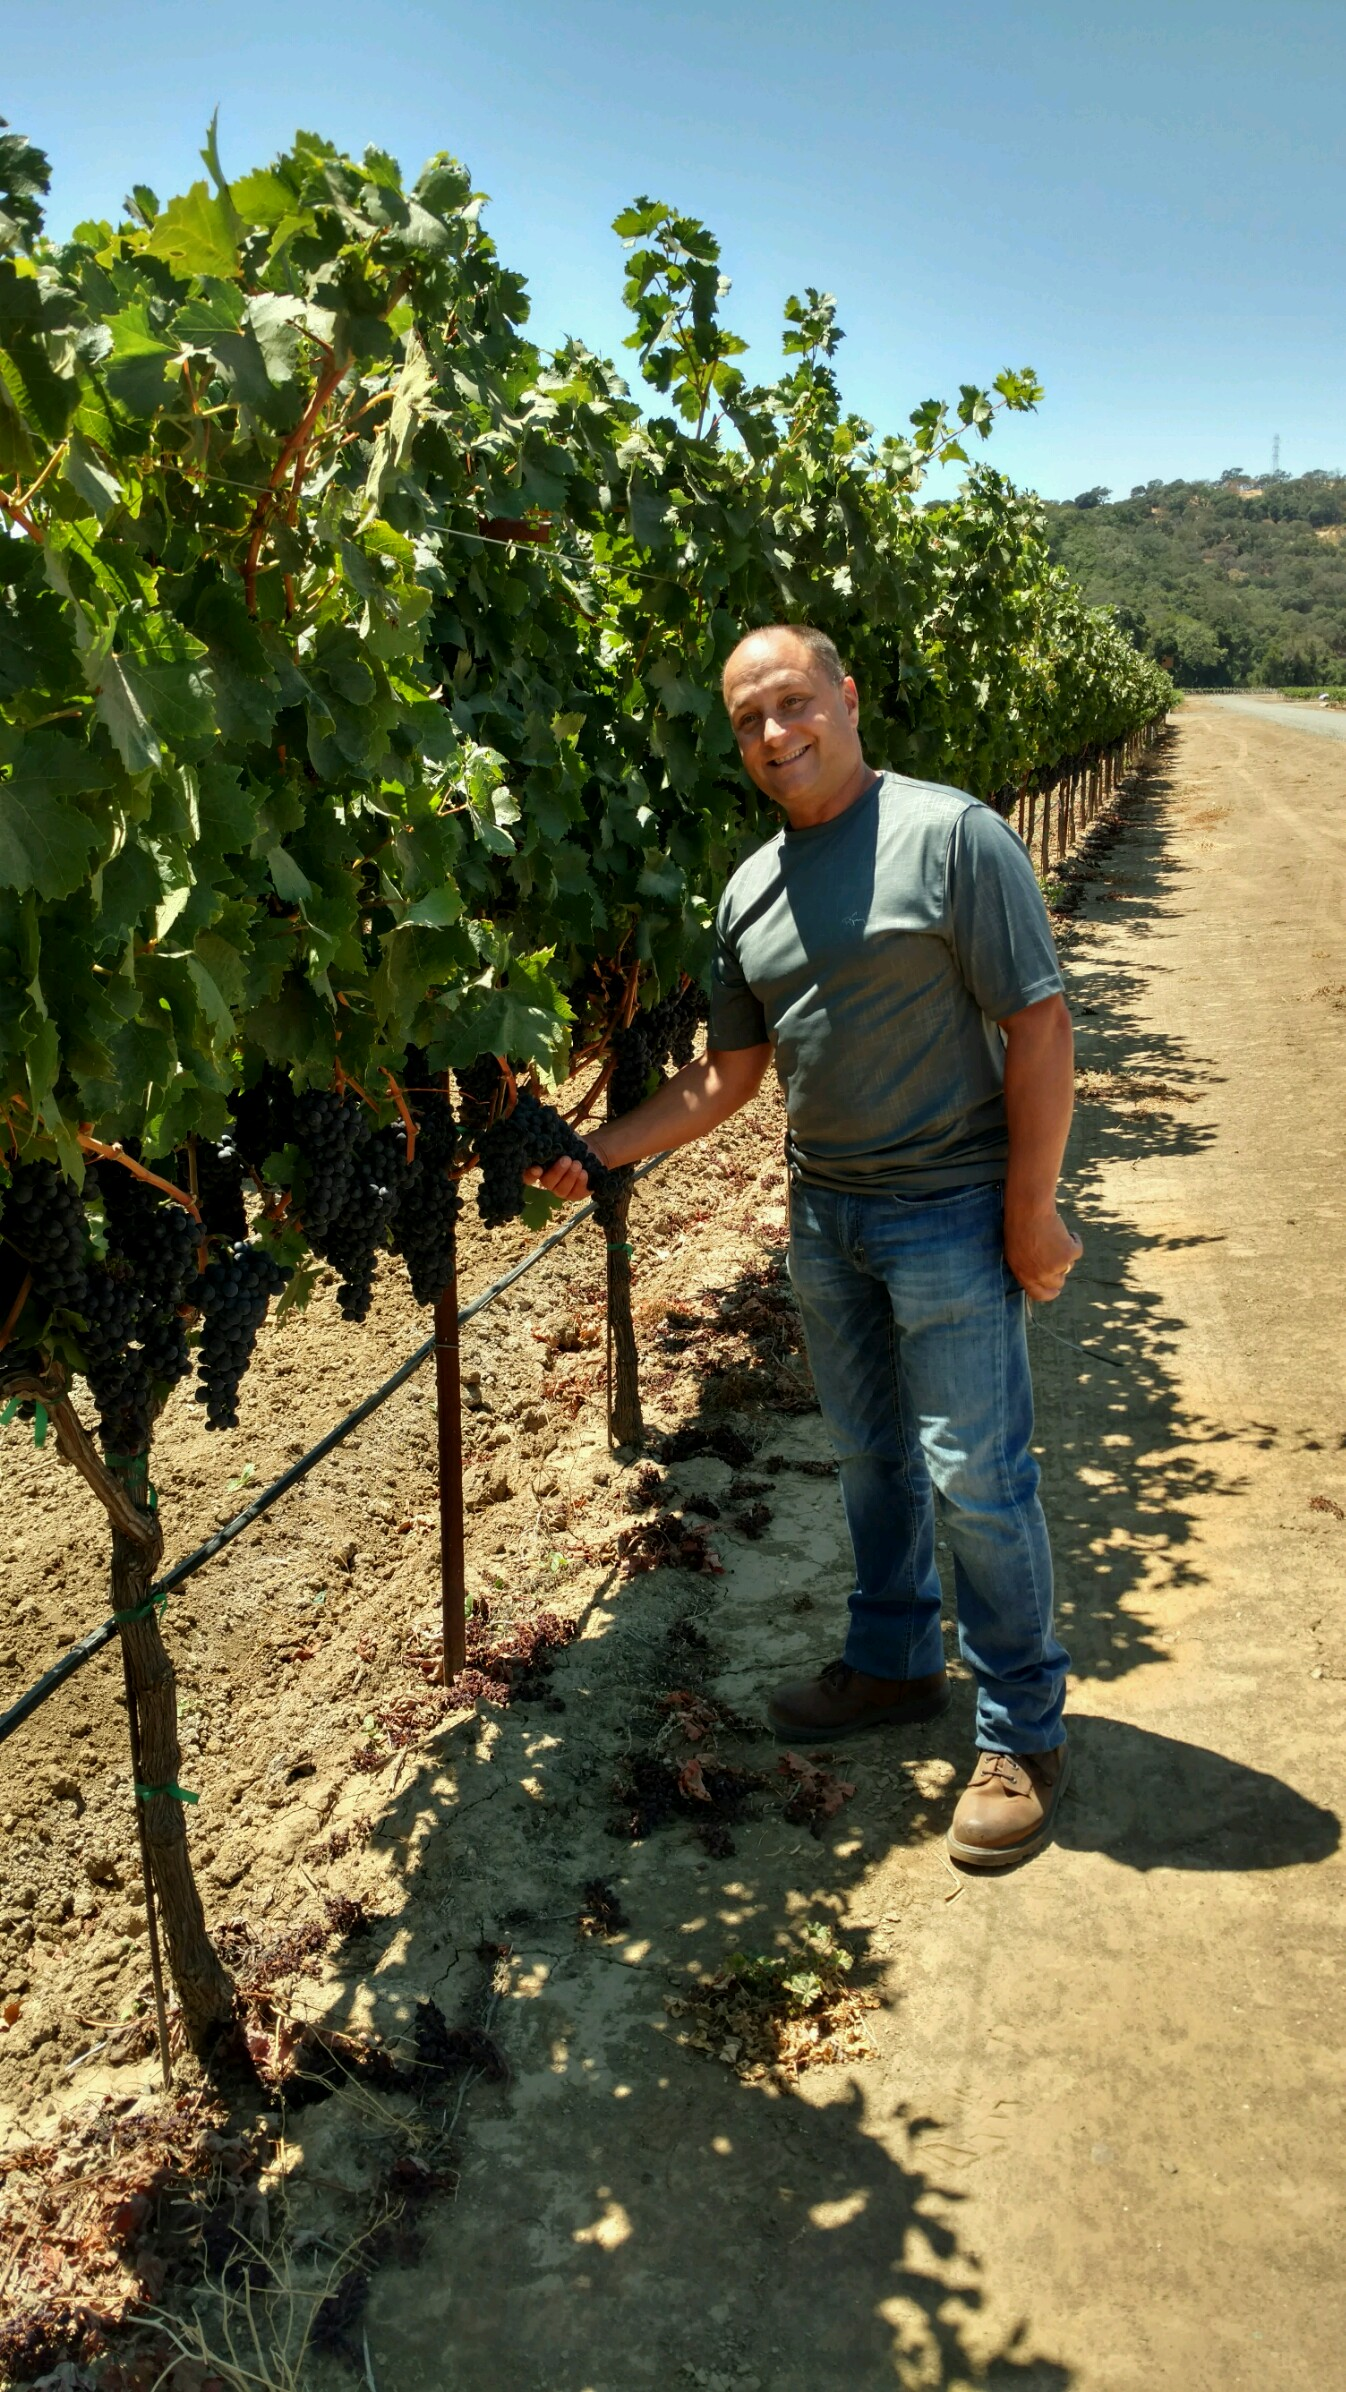 Michael Pinto of Gino Pinto inspecting the Barbera wine grapes in the L.M.P vineyard in the Suisun Valley.